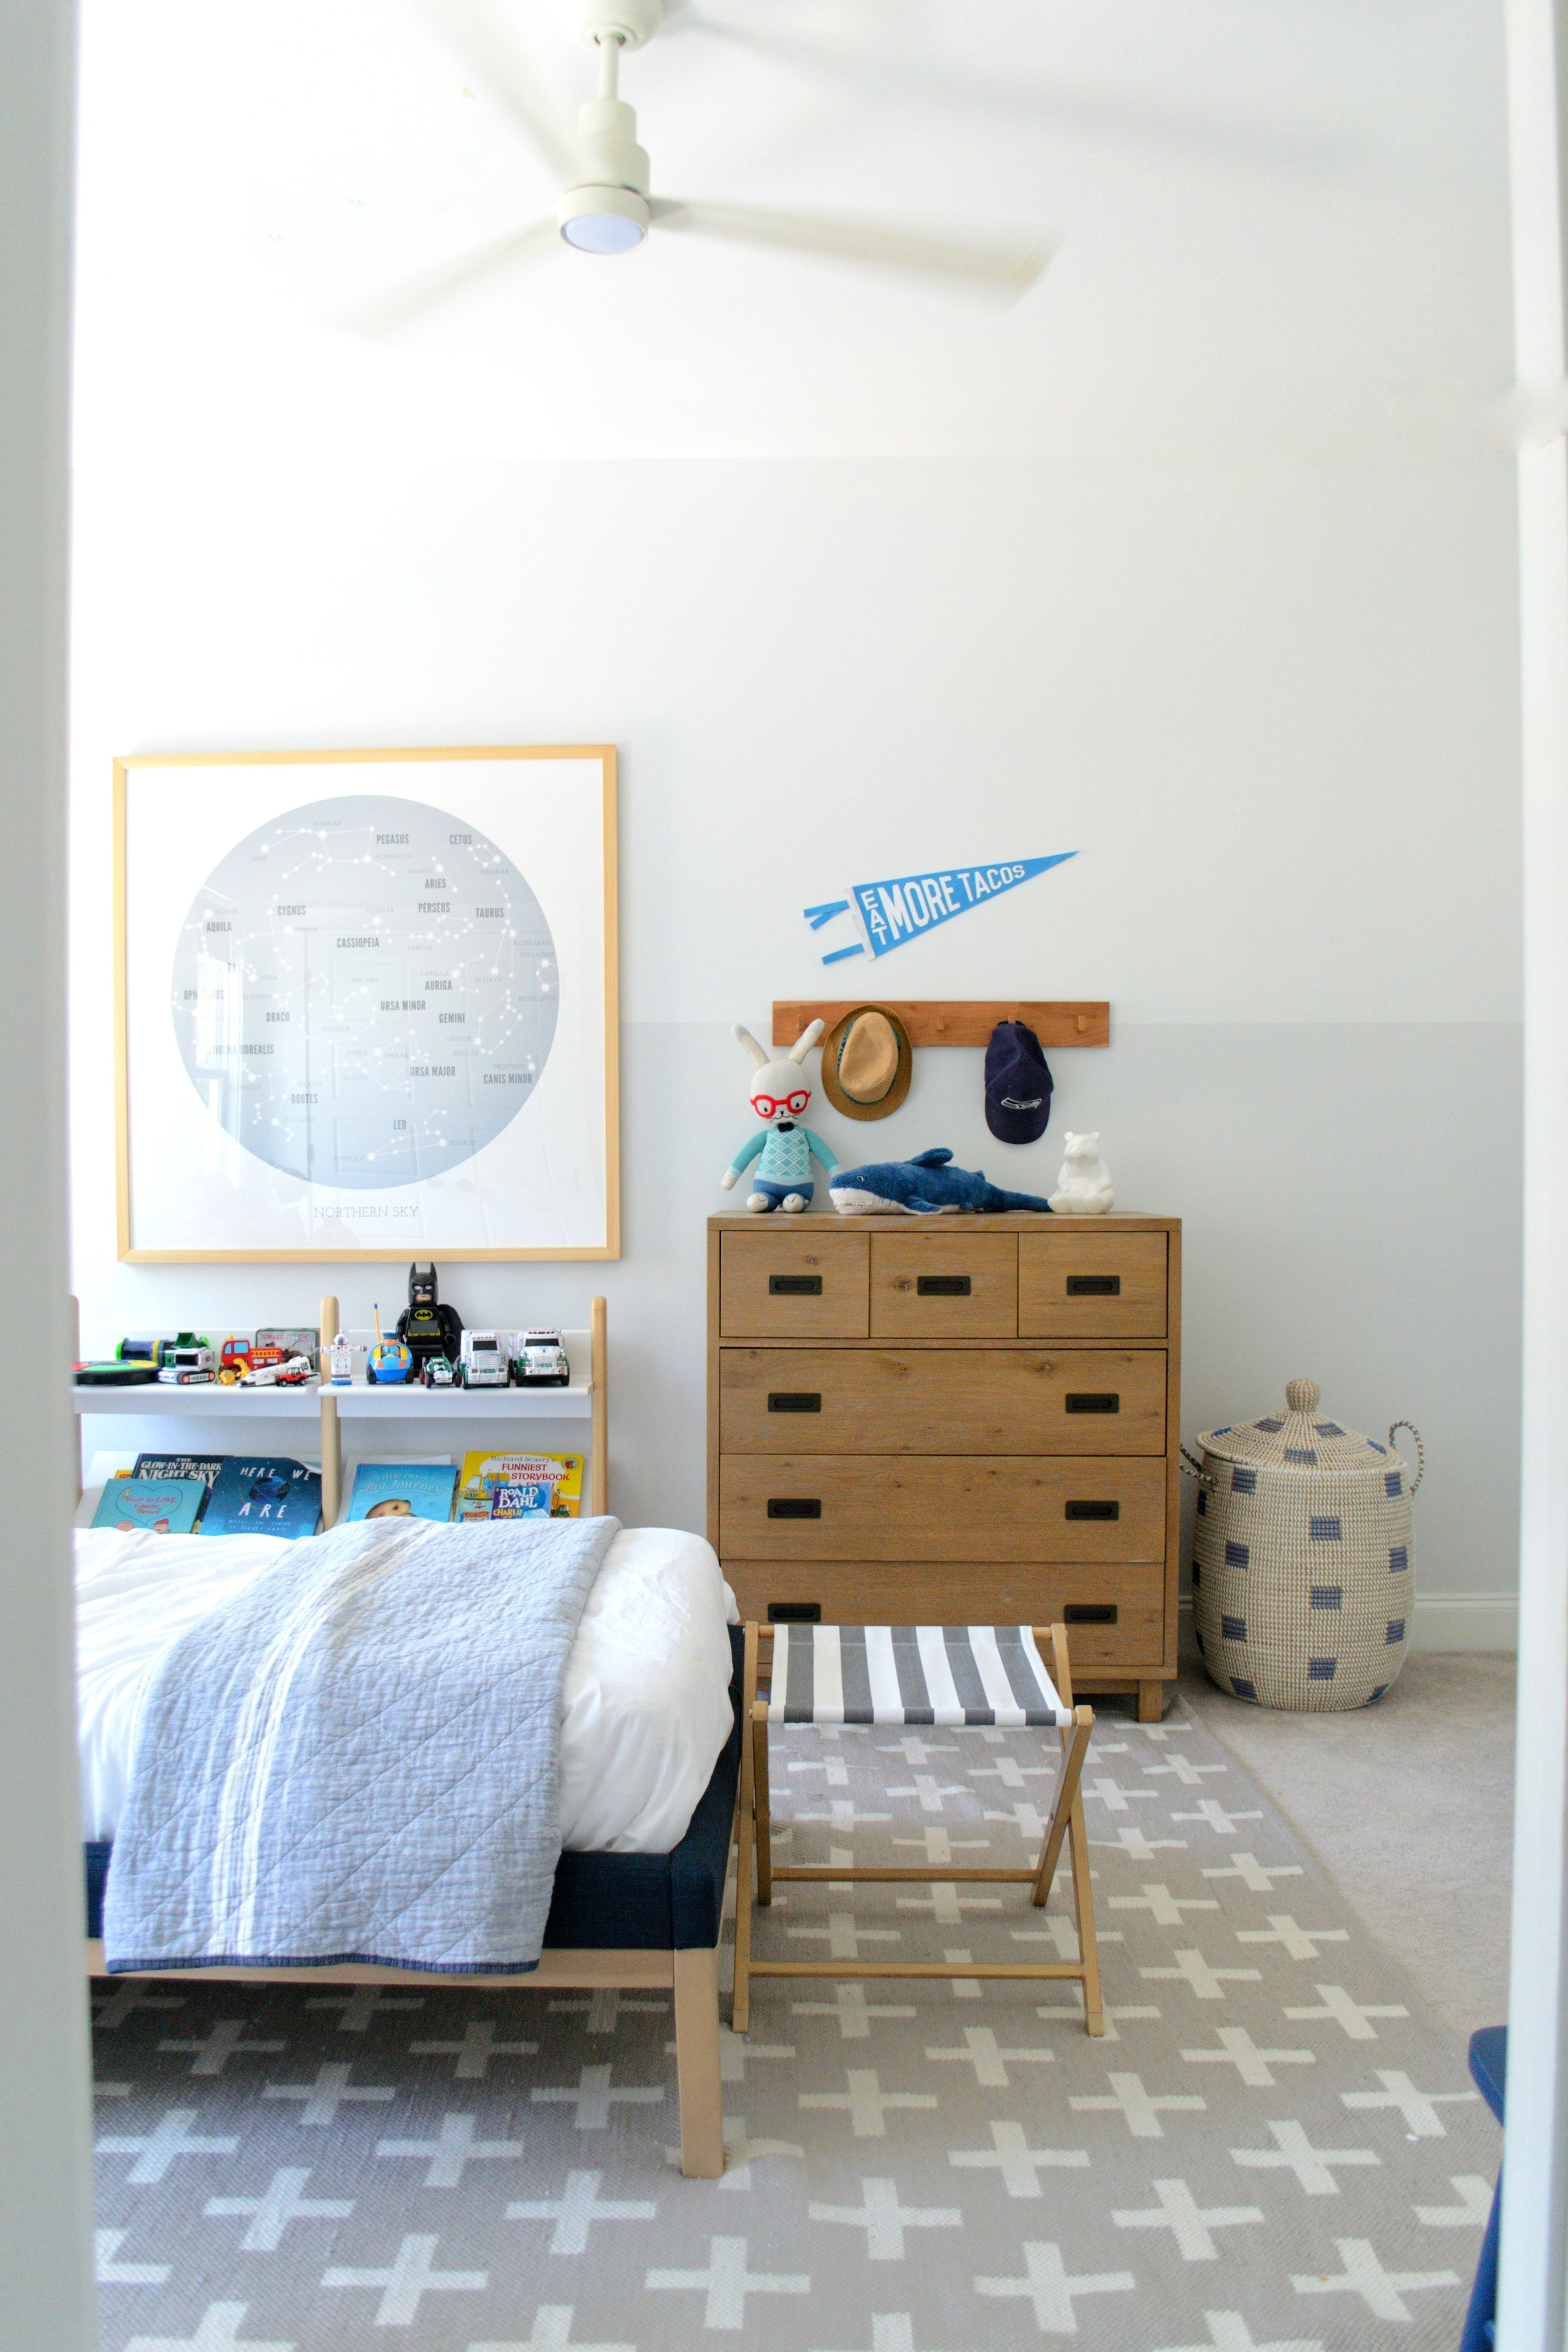 Paint Colors in My House, Chrissy Marie Blog